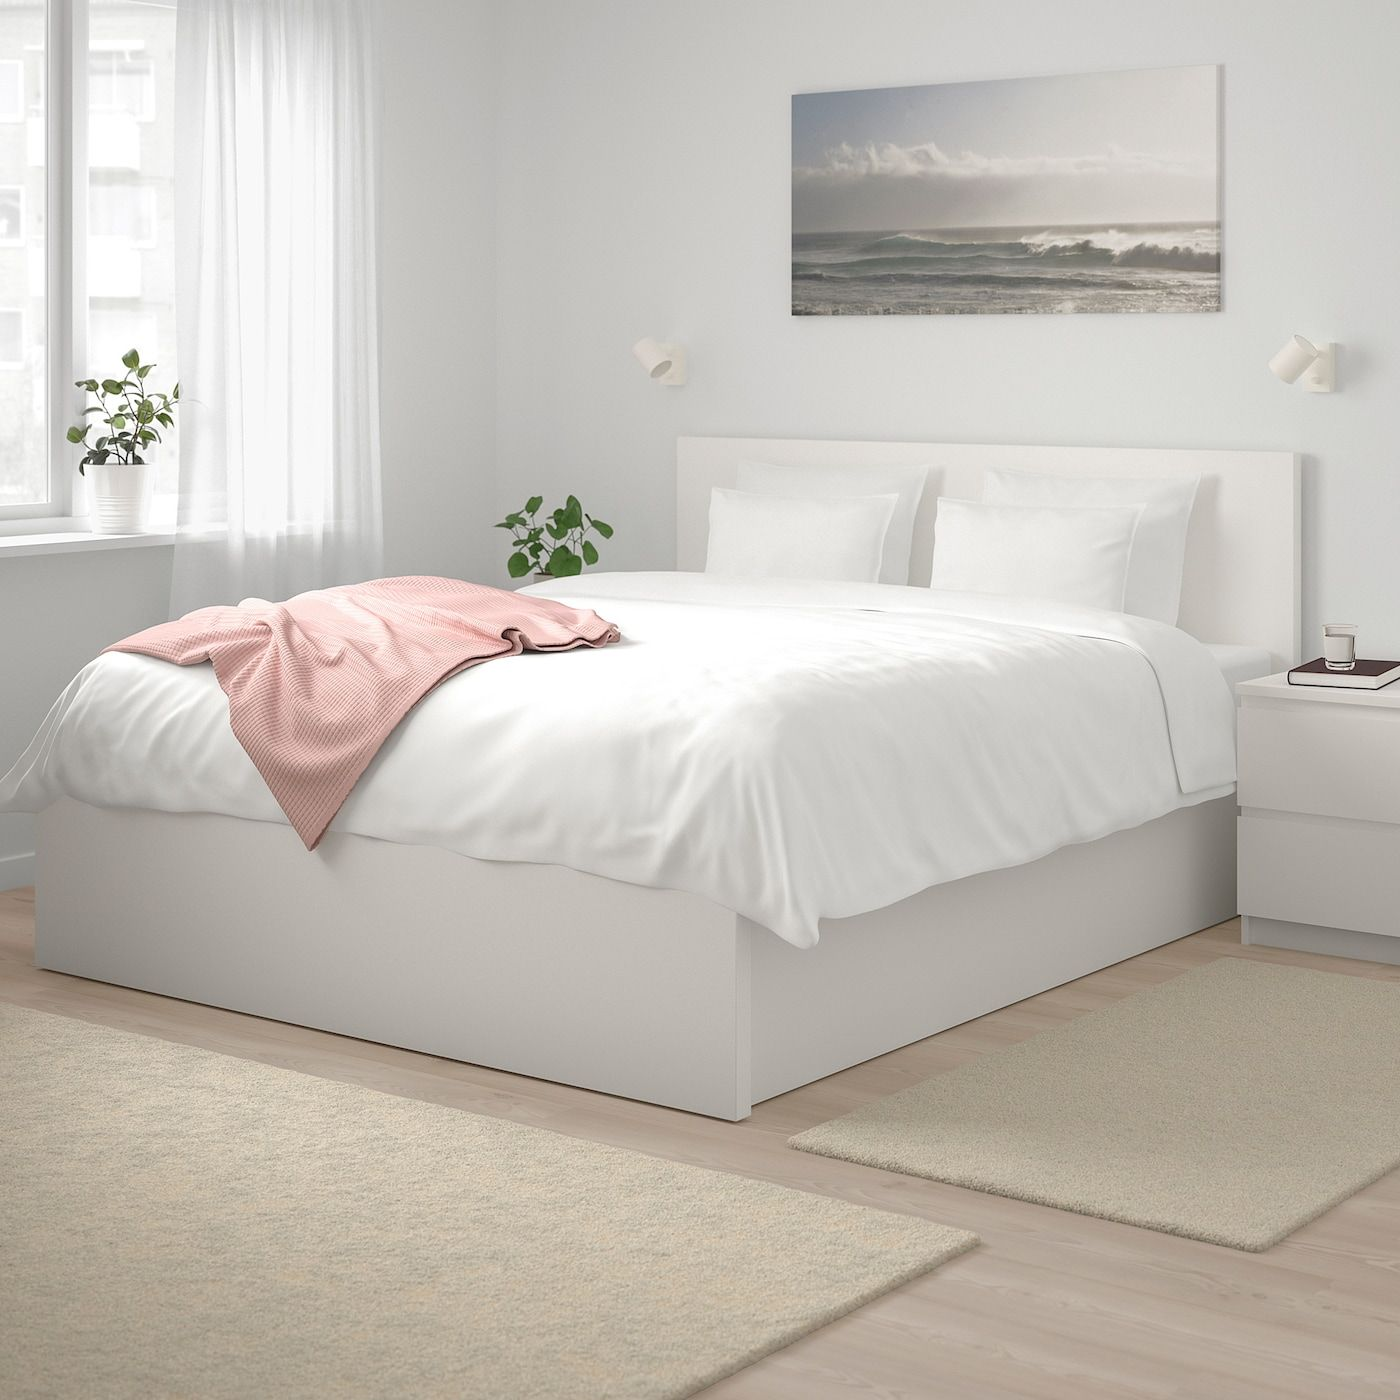 Malm Storage Bed White Queen White Bed Frame Malm Bed White